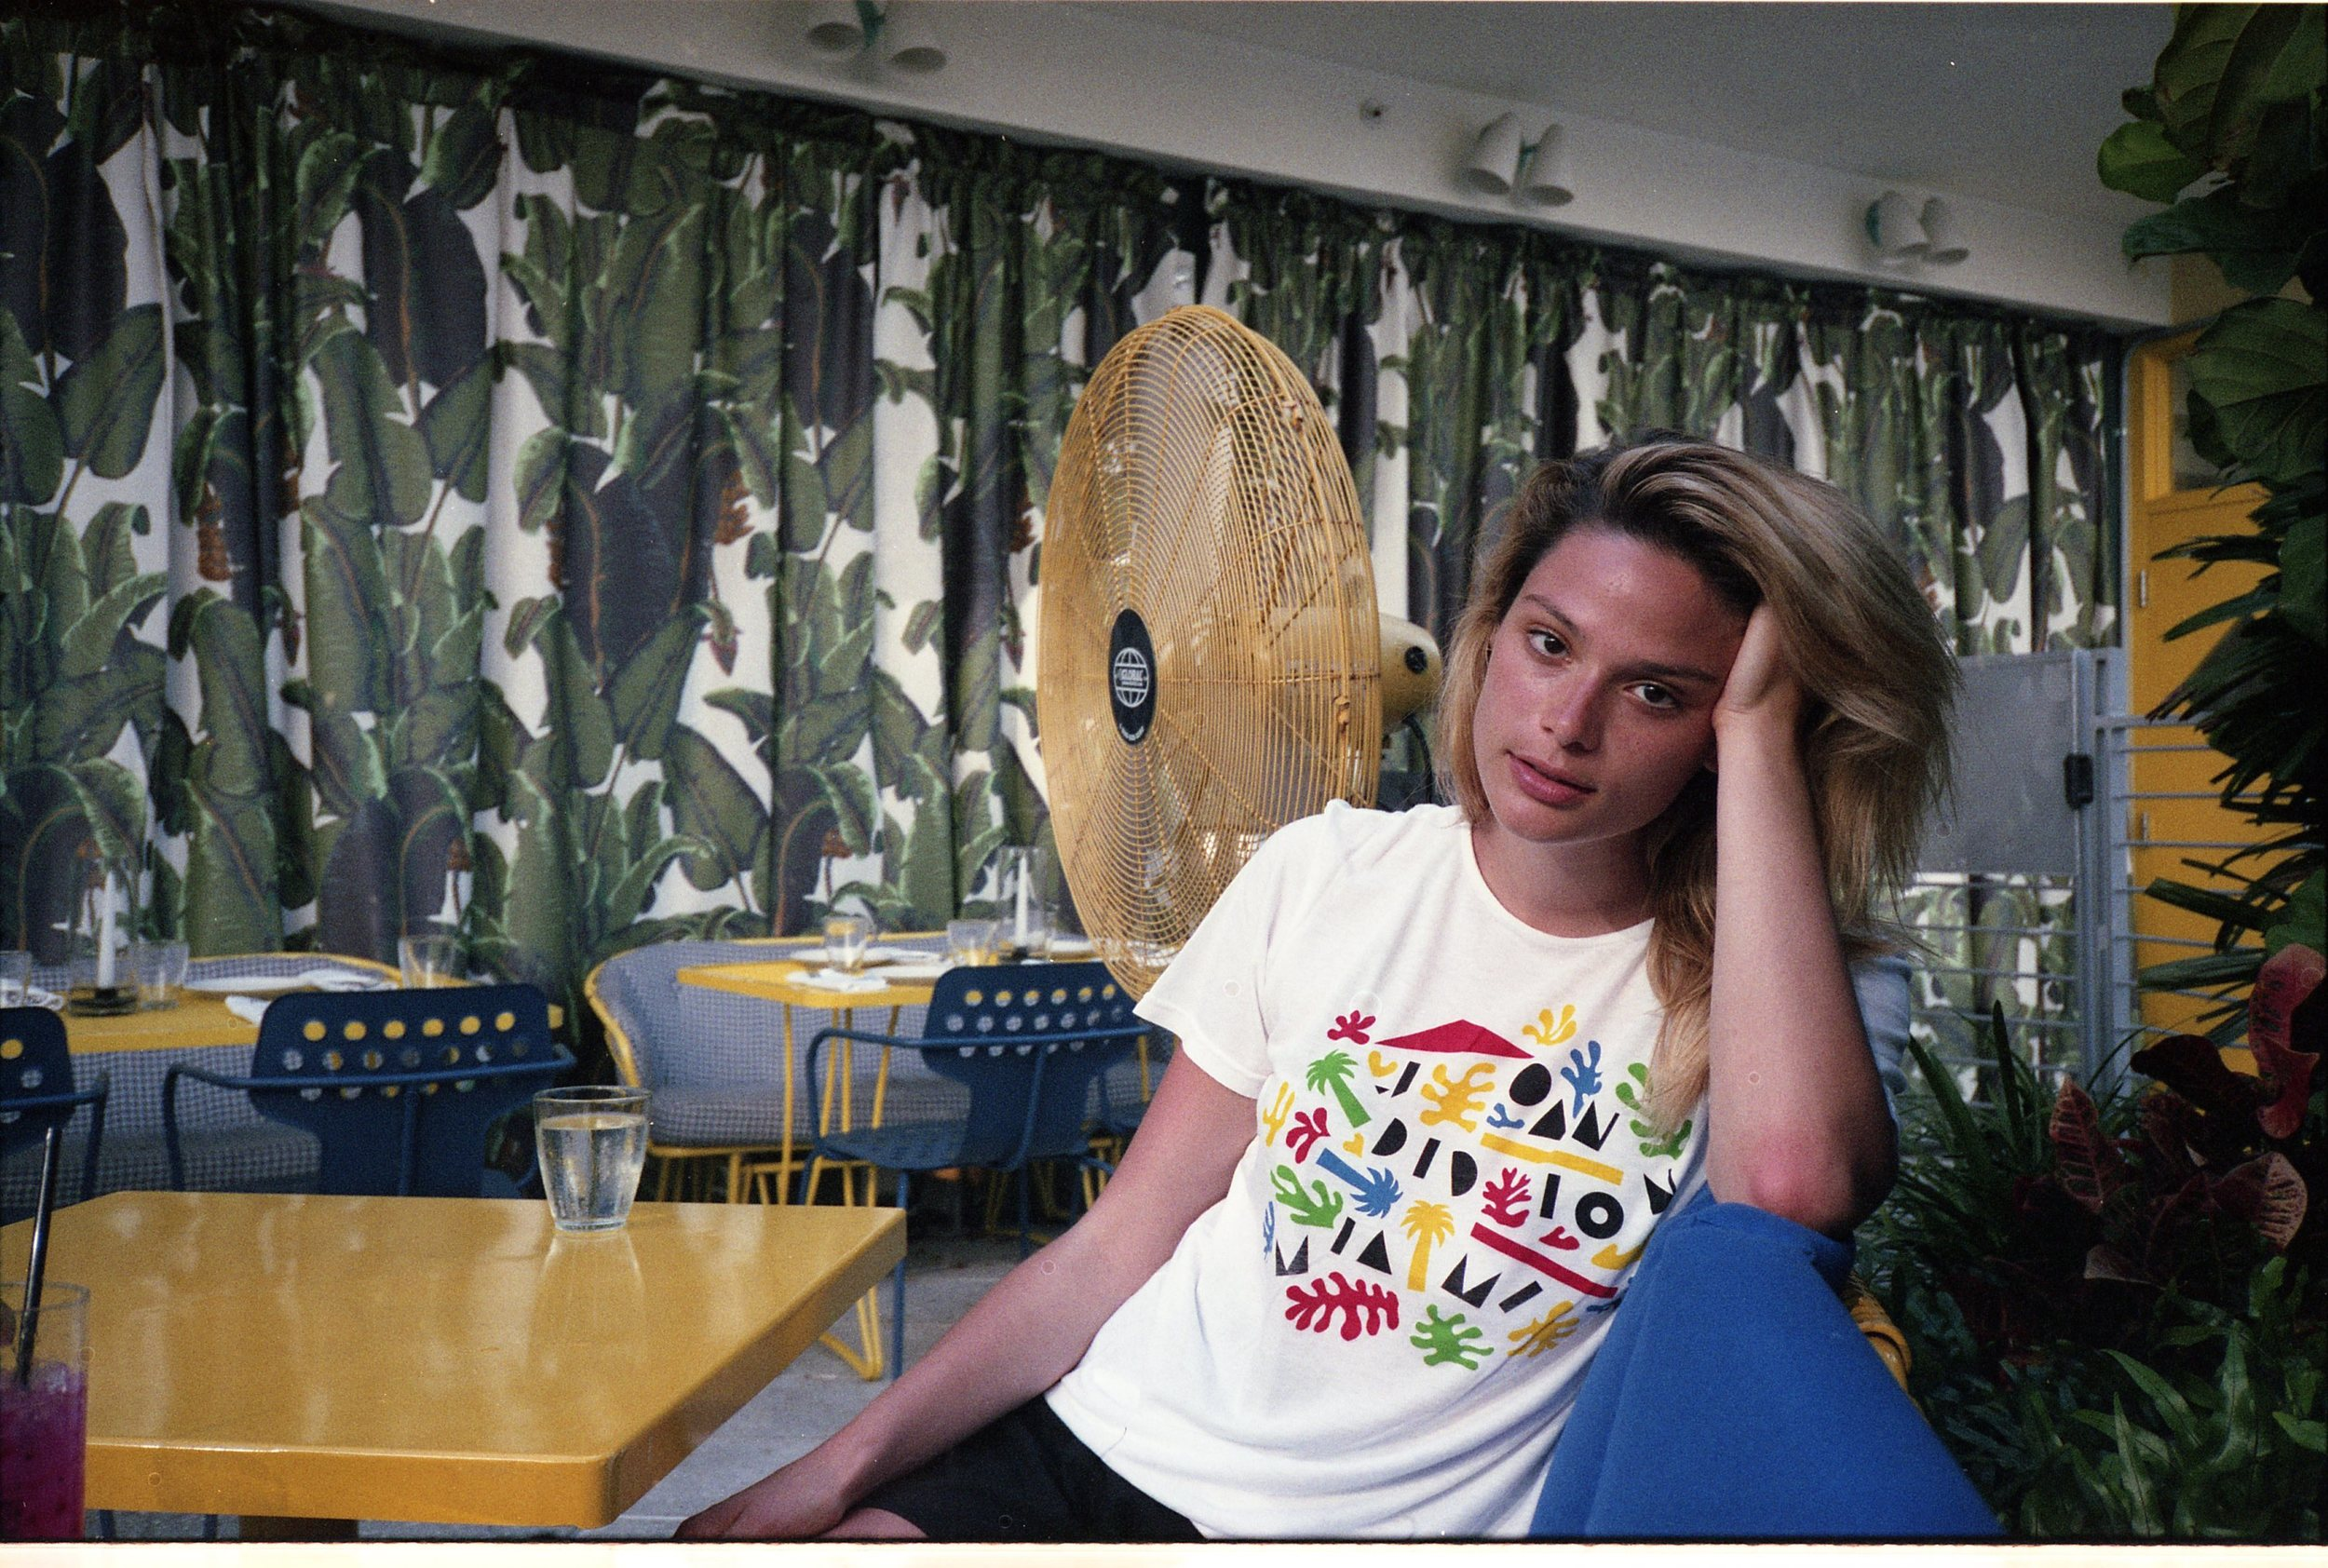 molly at the continental. primary colors algae tee